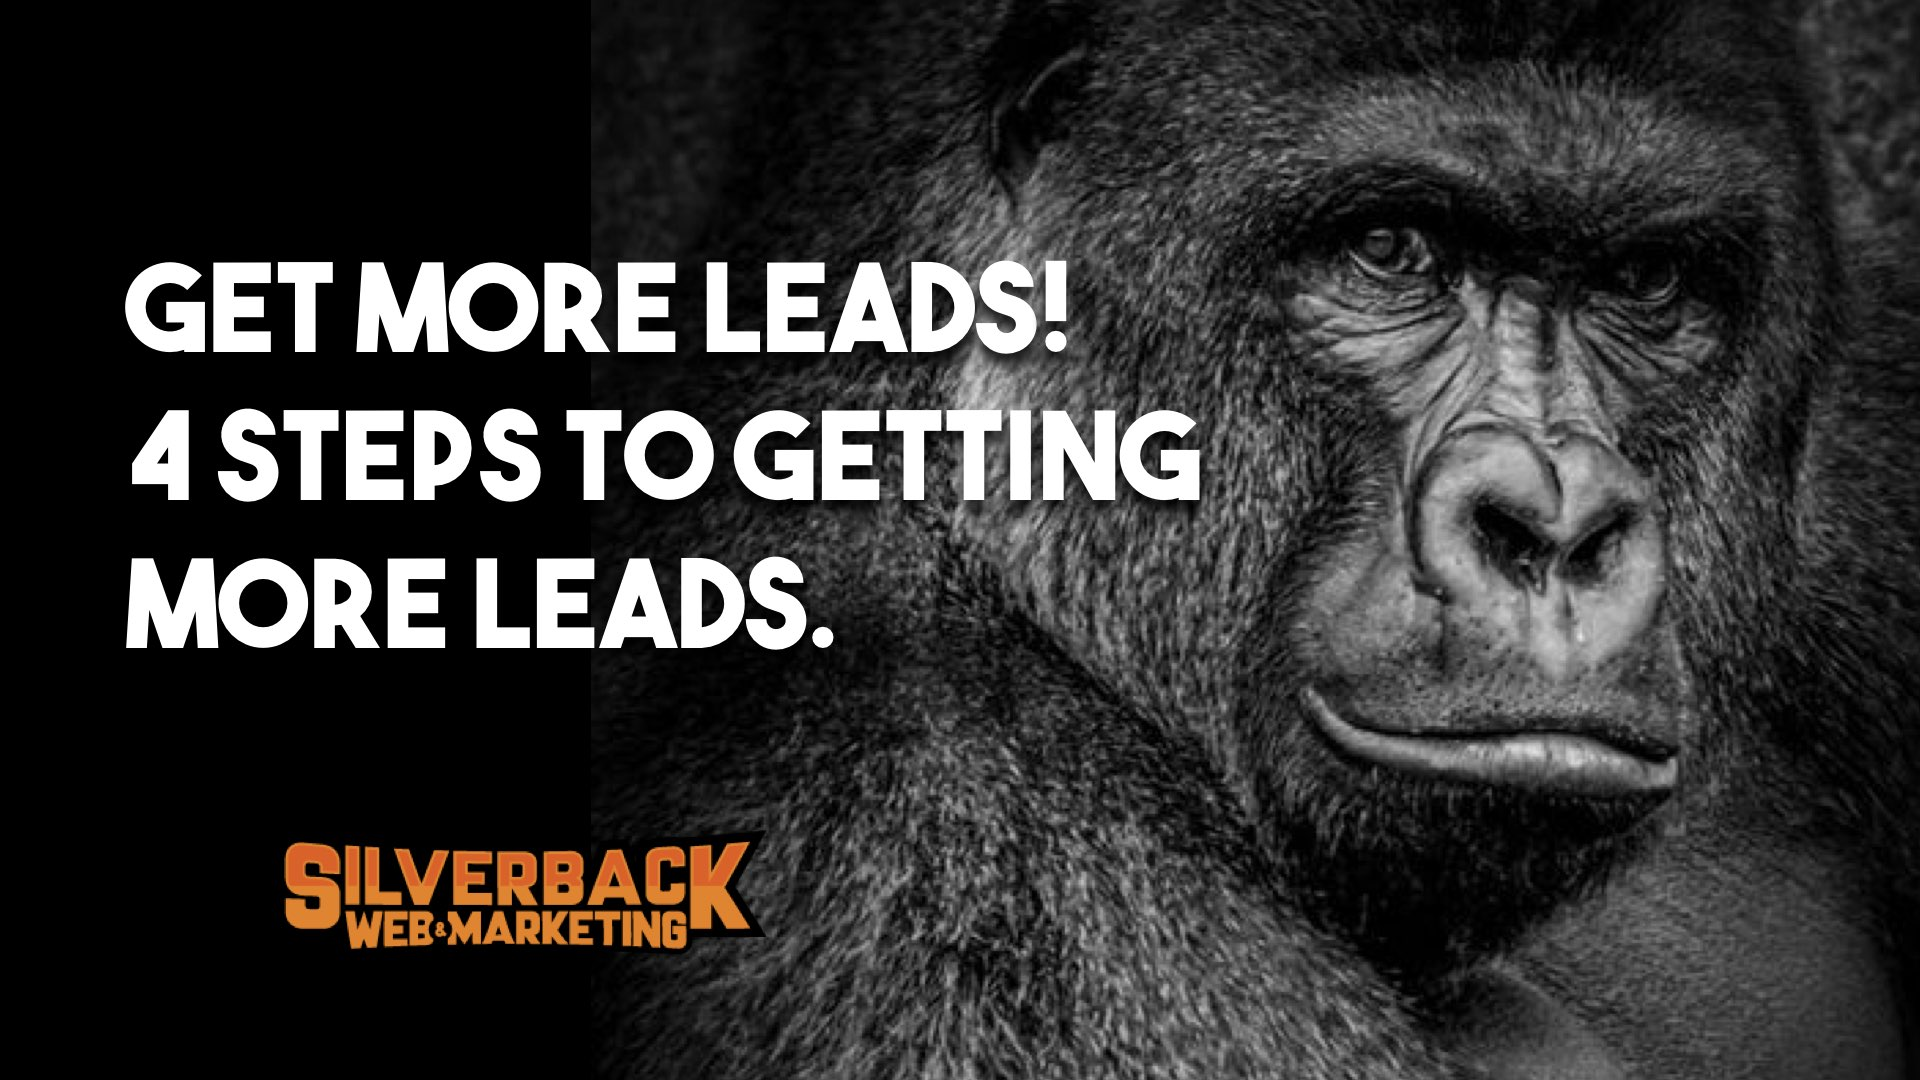 get more leads for contractors - FREE TOOLS